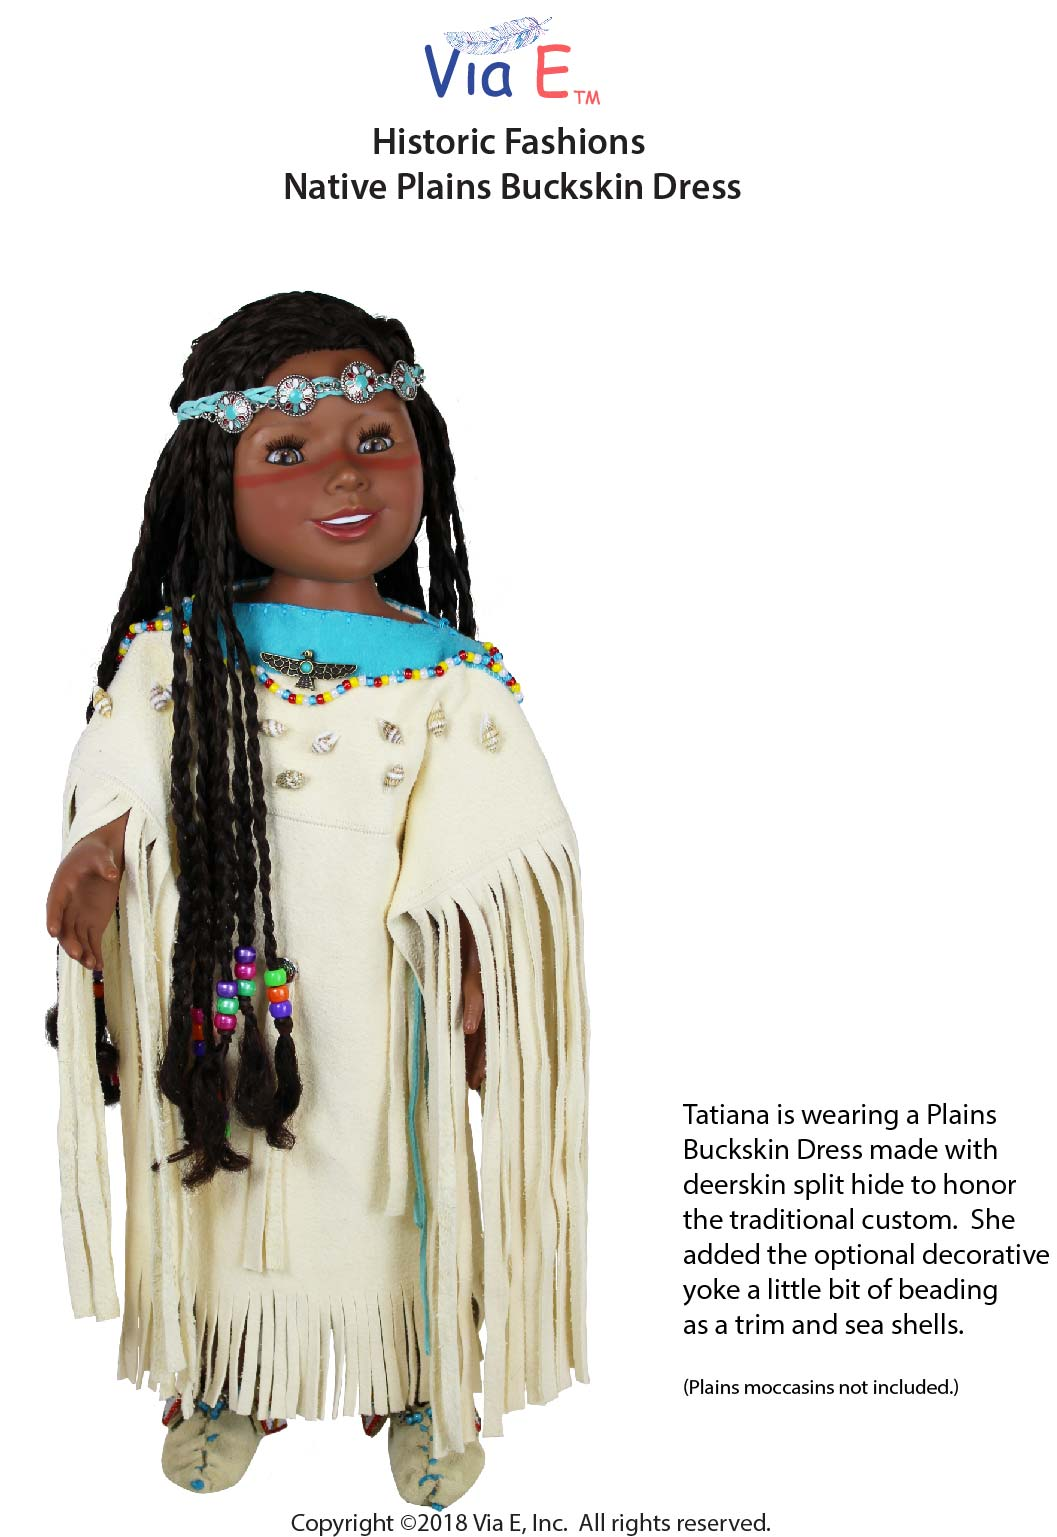 Native Plains Buckskin Dress Historic Fashion PDF Sewing Pattern